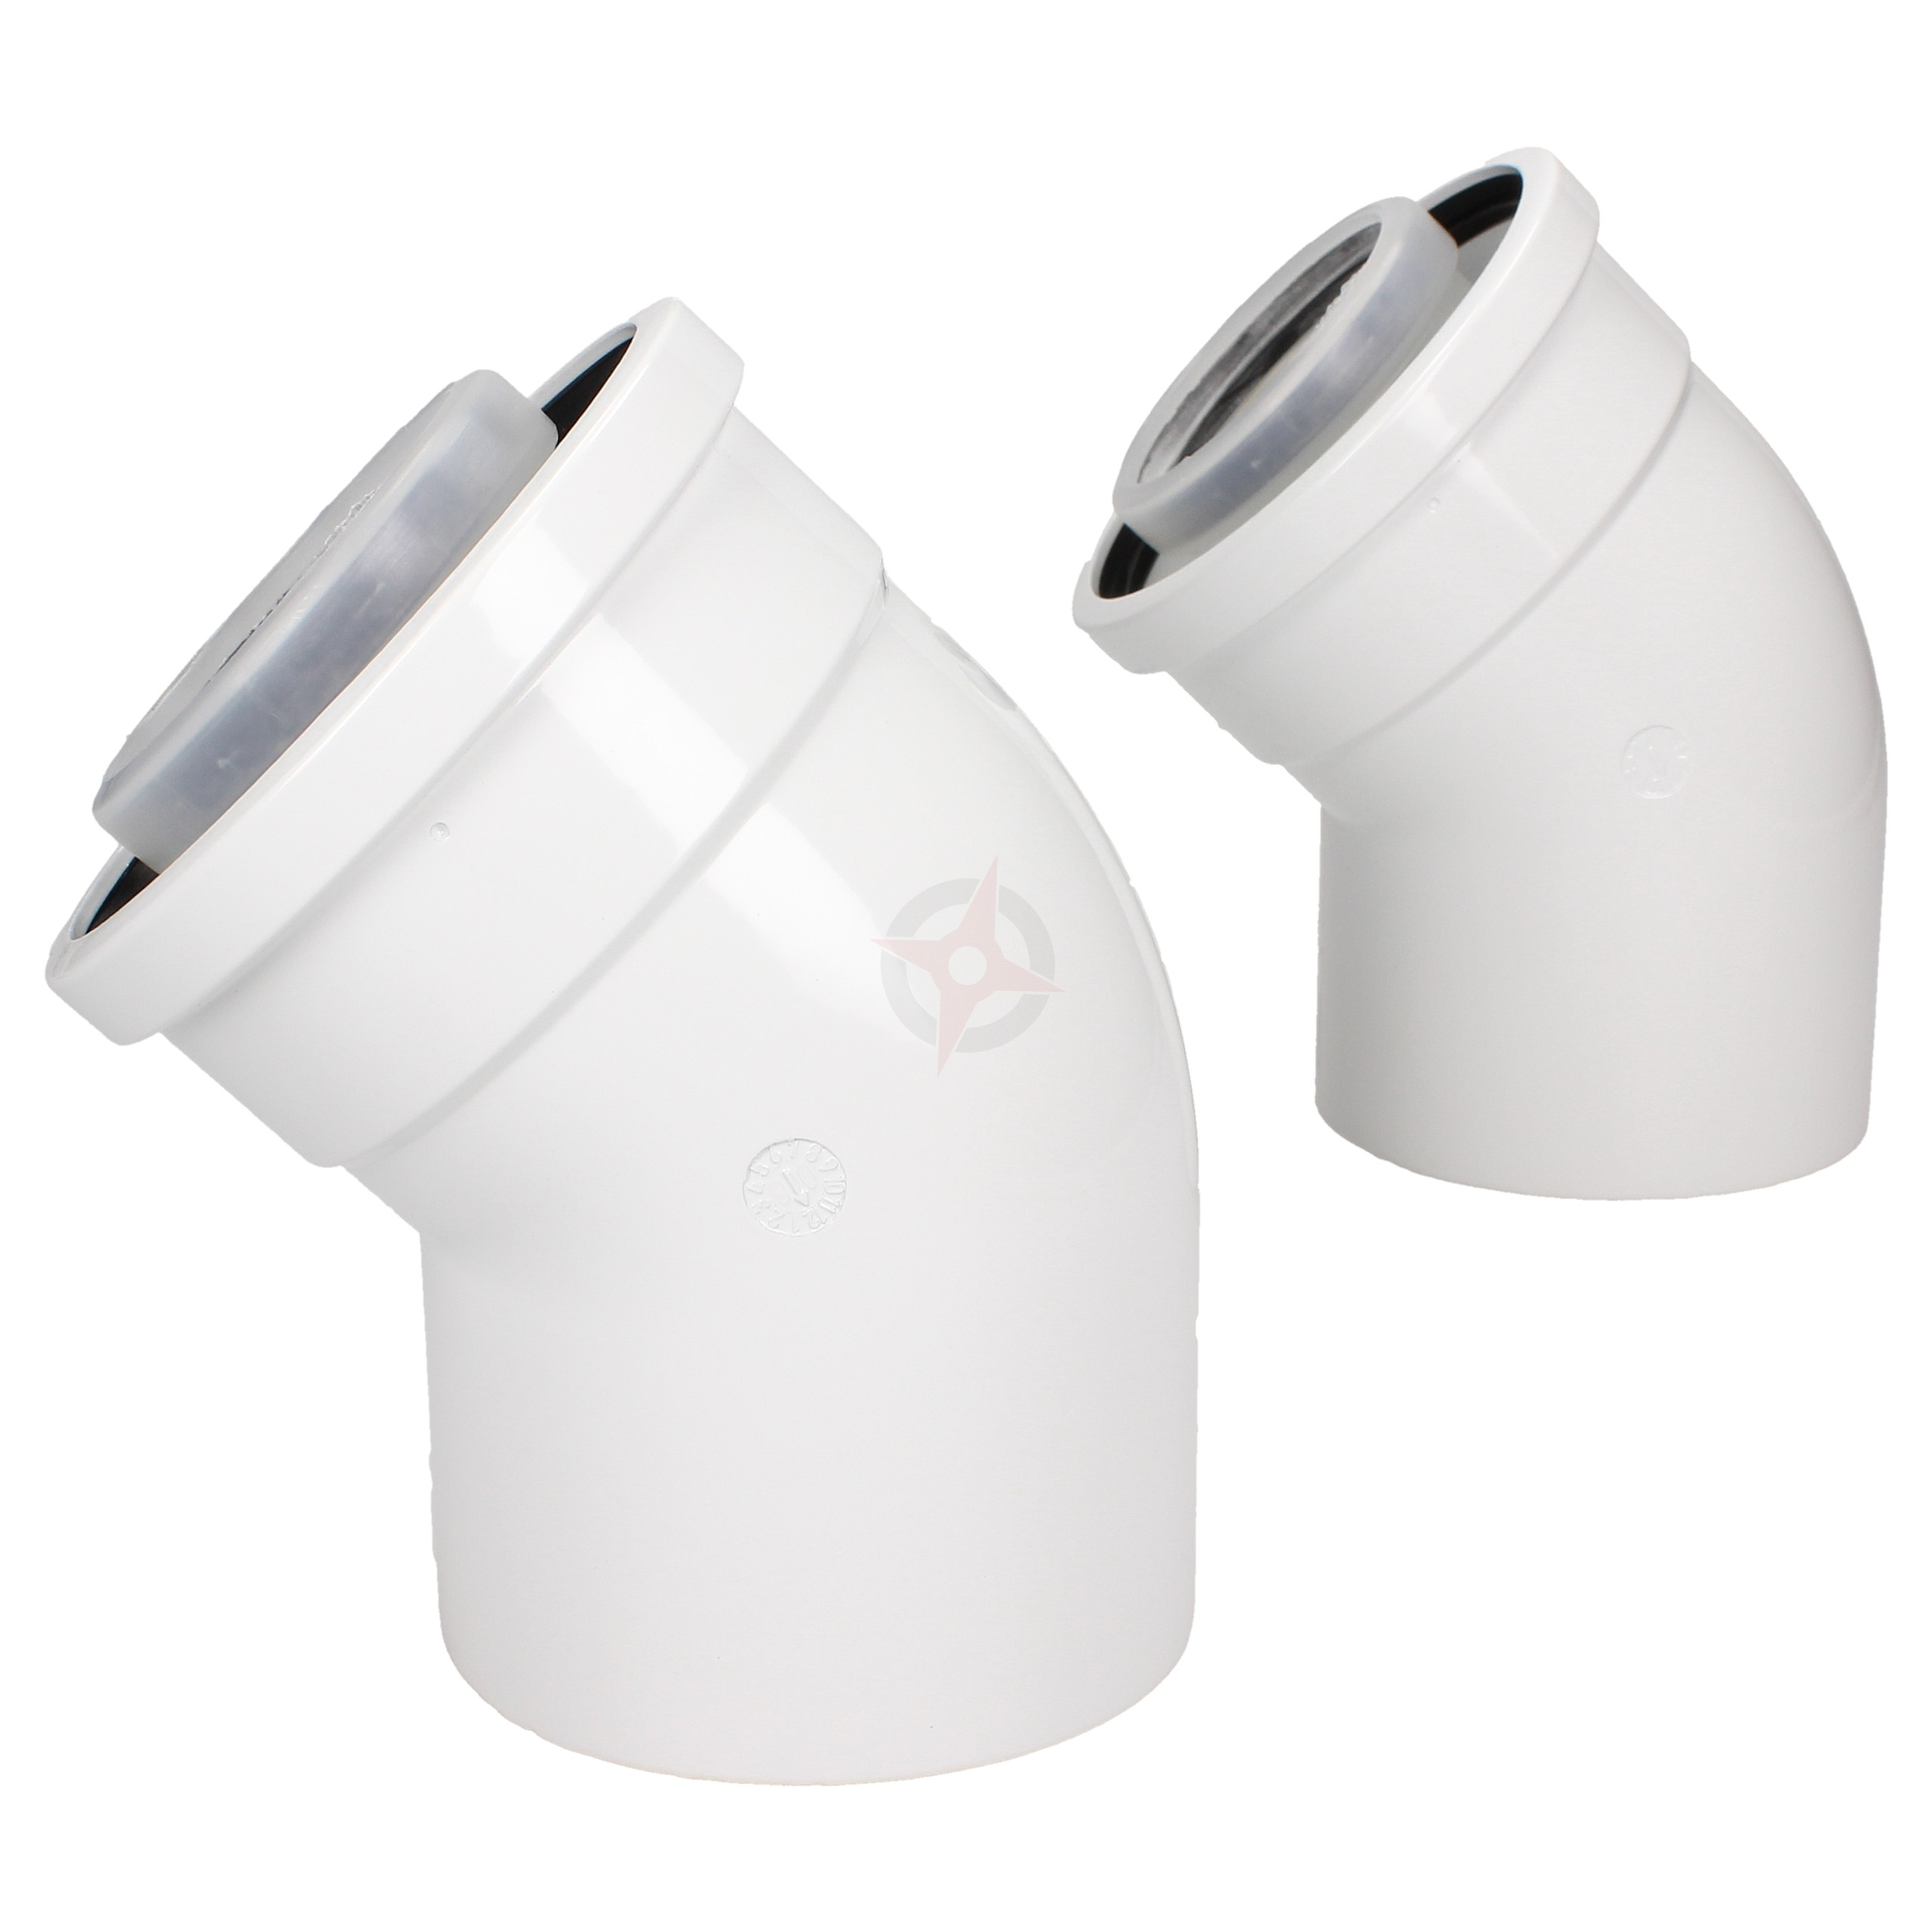 Worcester 45 Degree Flue Bends (Pair)